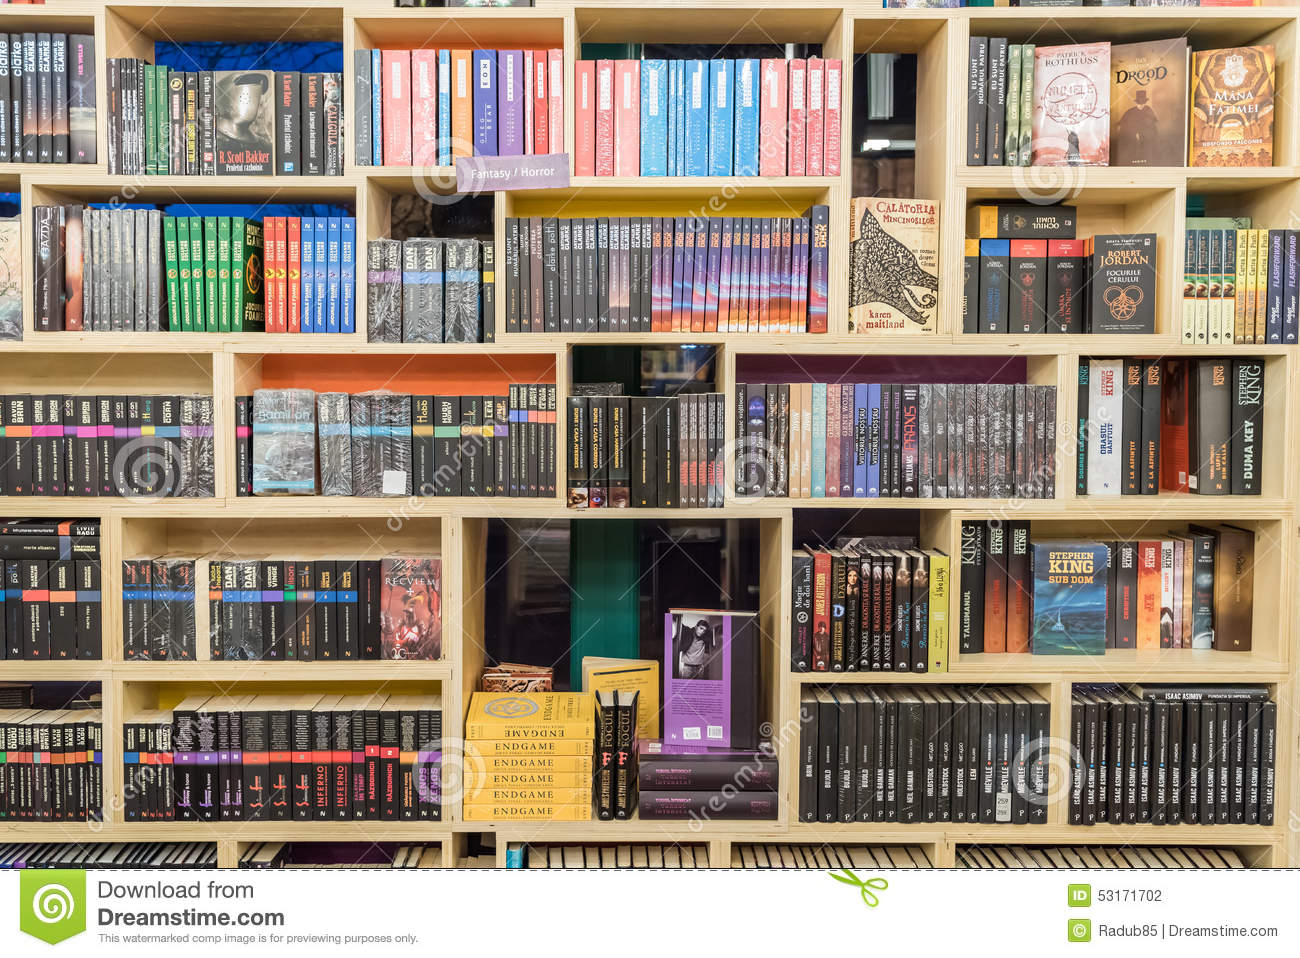 international science fiction books on library shelf. Black Bedroom Furniture Sets. Home Design Ideas